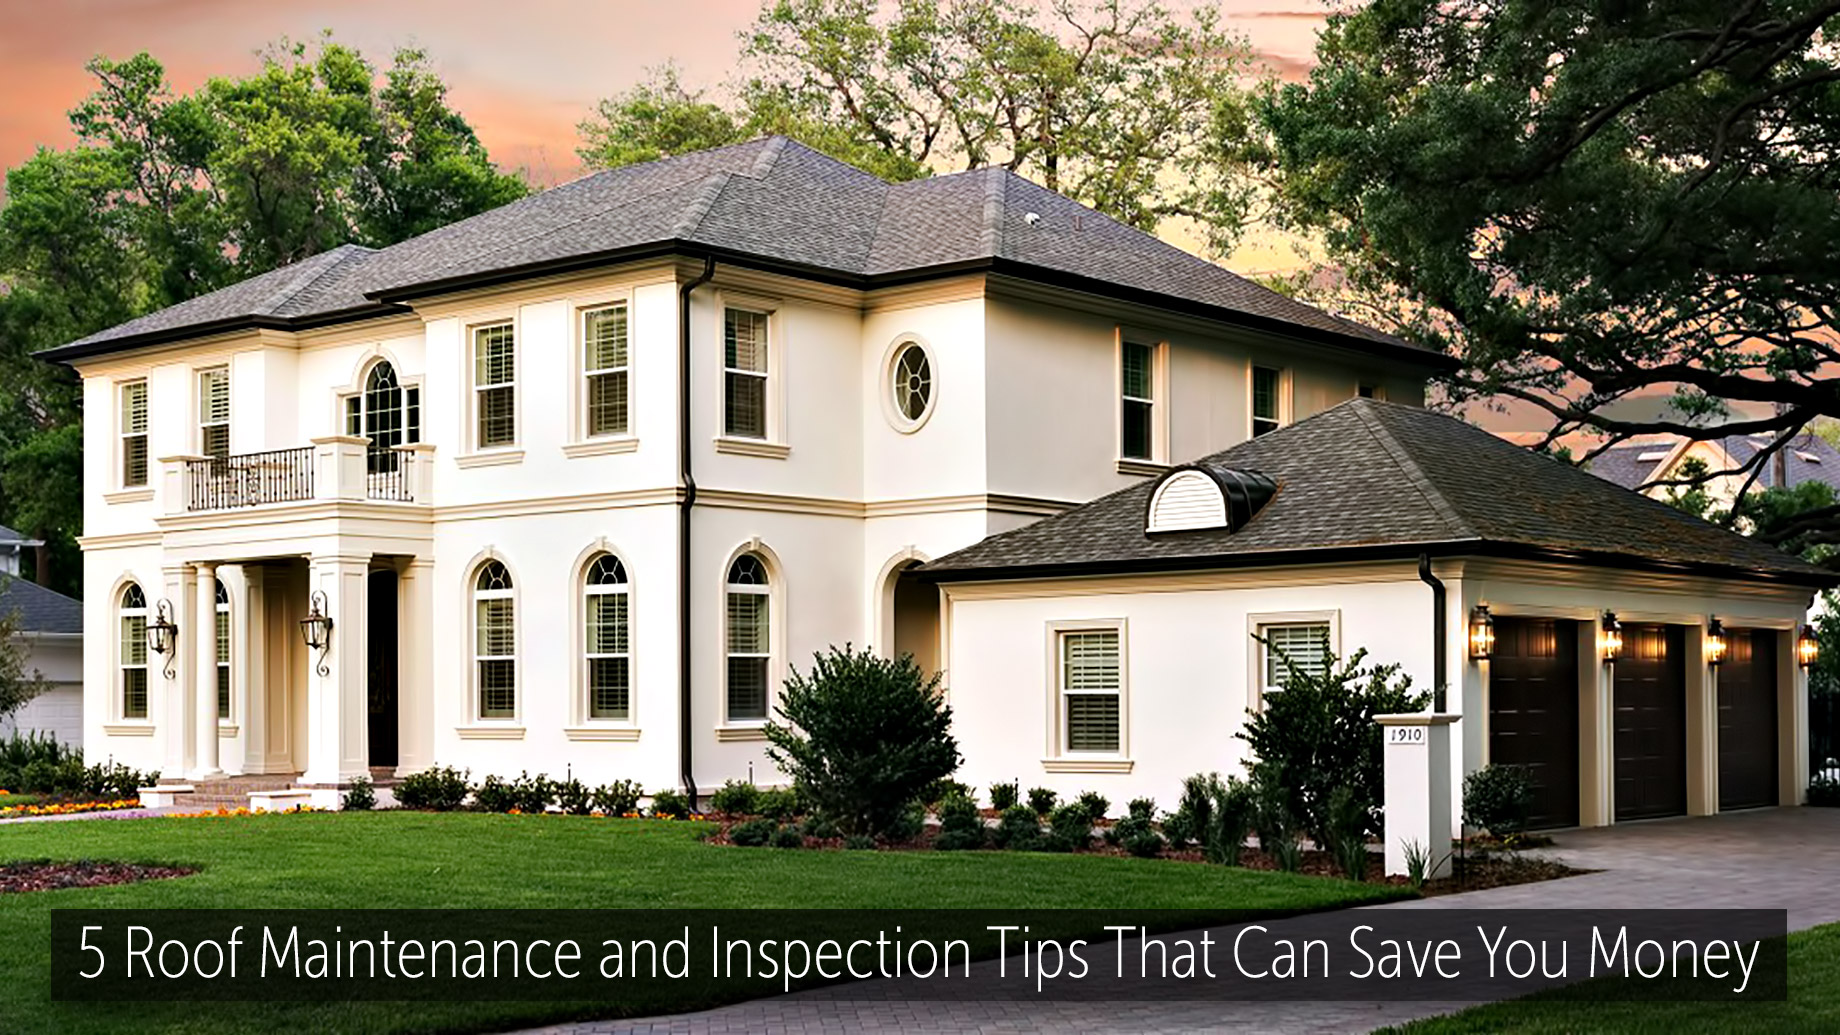 5 Roof Maintenance and Inspection Tips That Can Save You Money